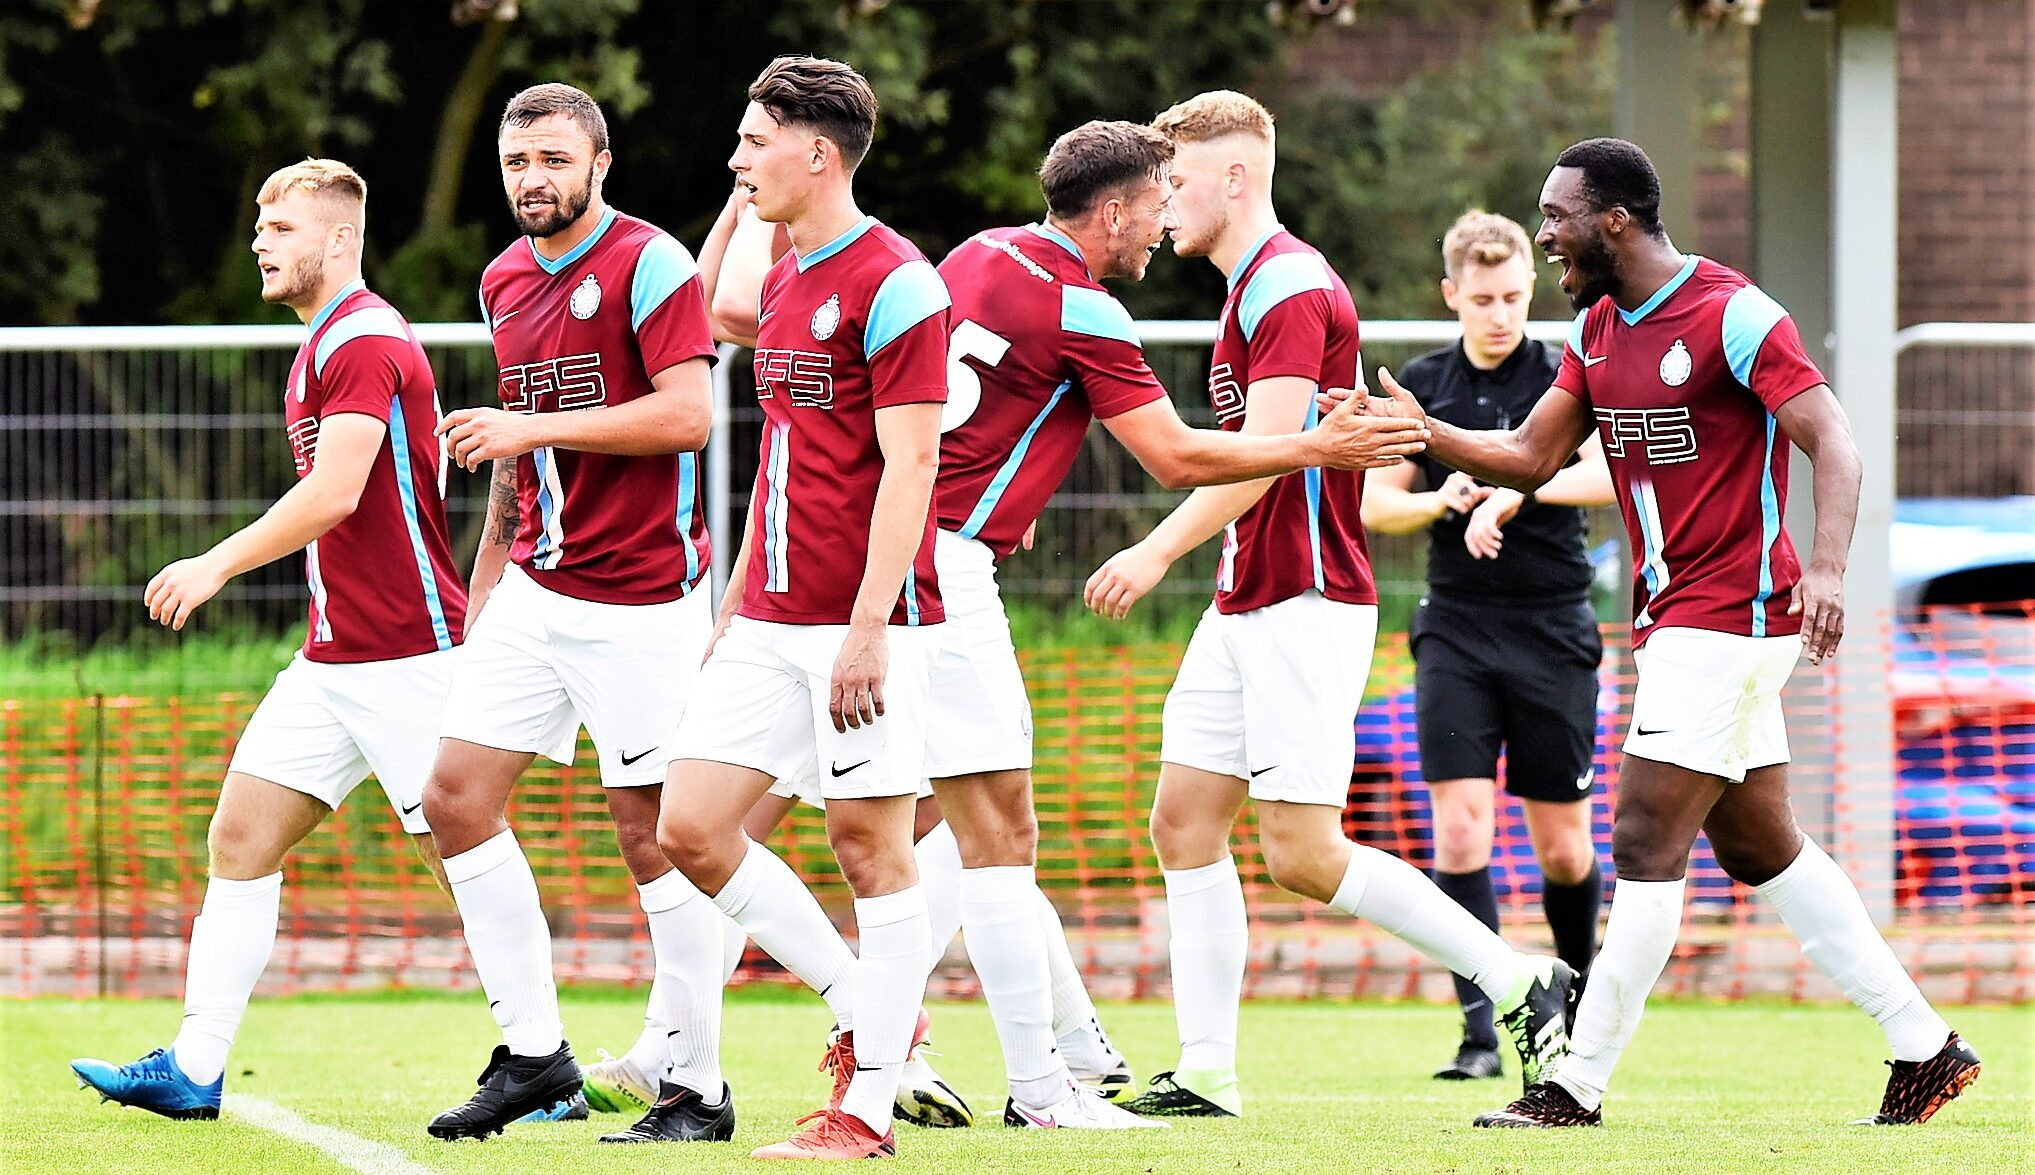 Match Preview: South Shields vs Mickleover, The Pitching In Northern Premier League